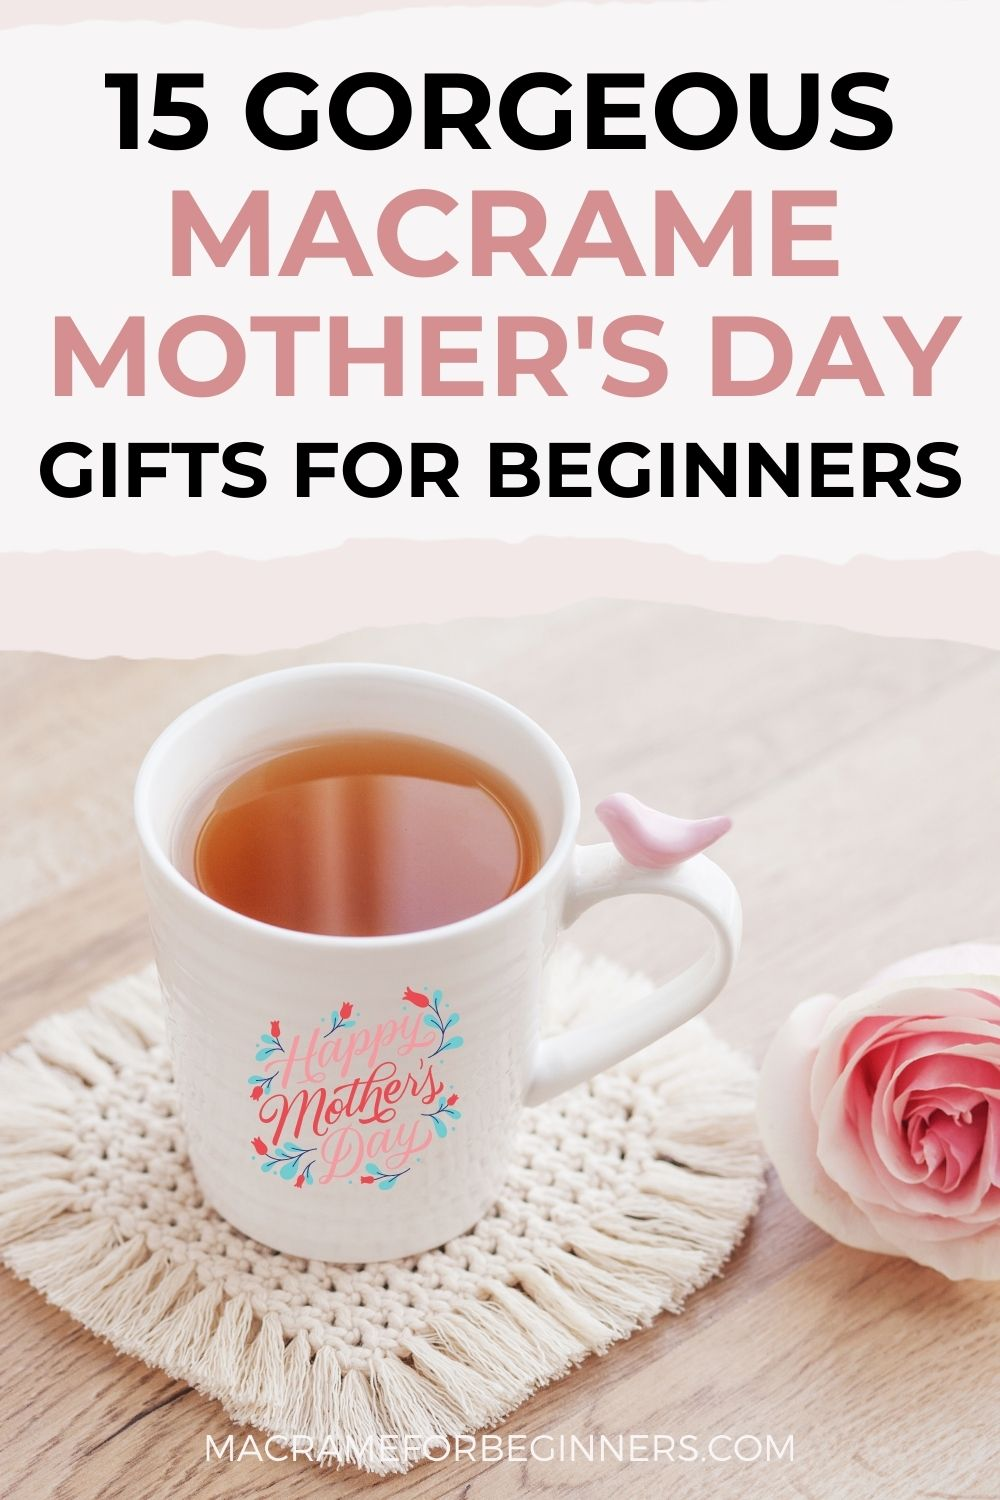 15 Gorgeous DIY Macrame Mother's Day Gifts for Beginners - Macrame for Beginners